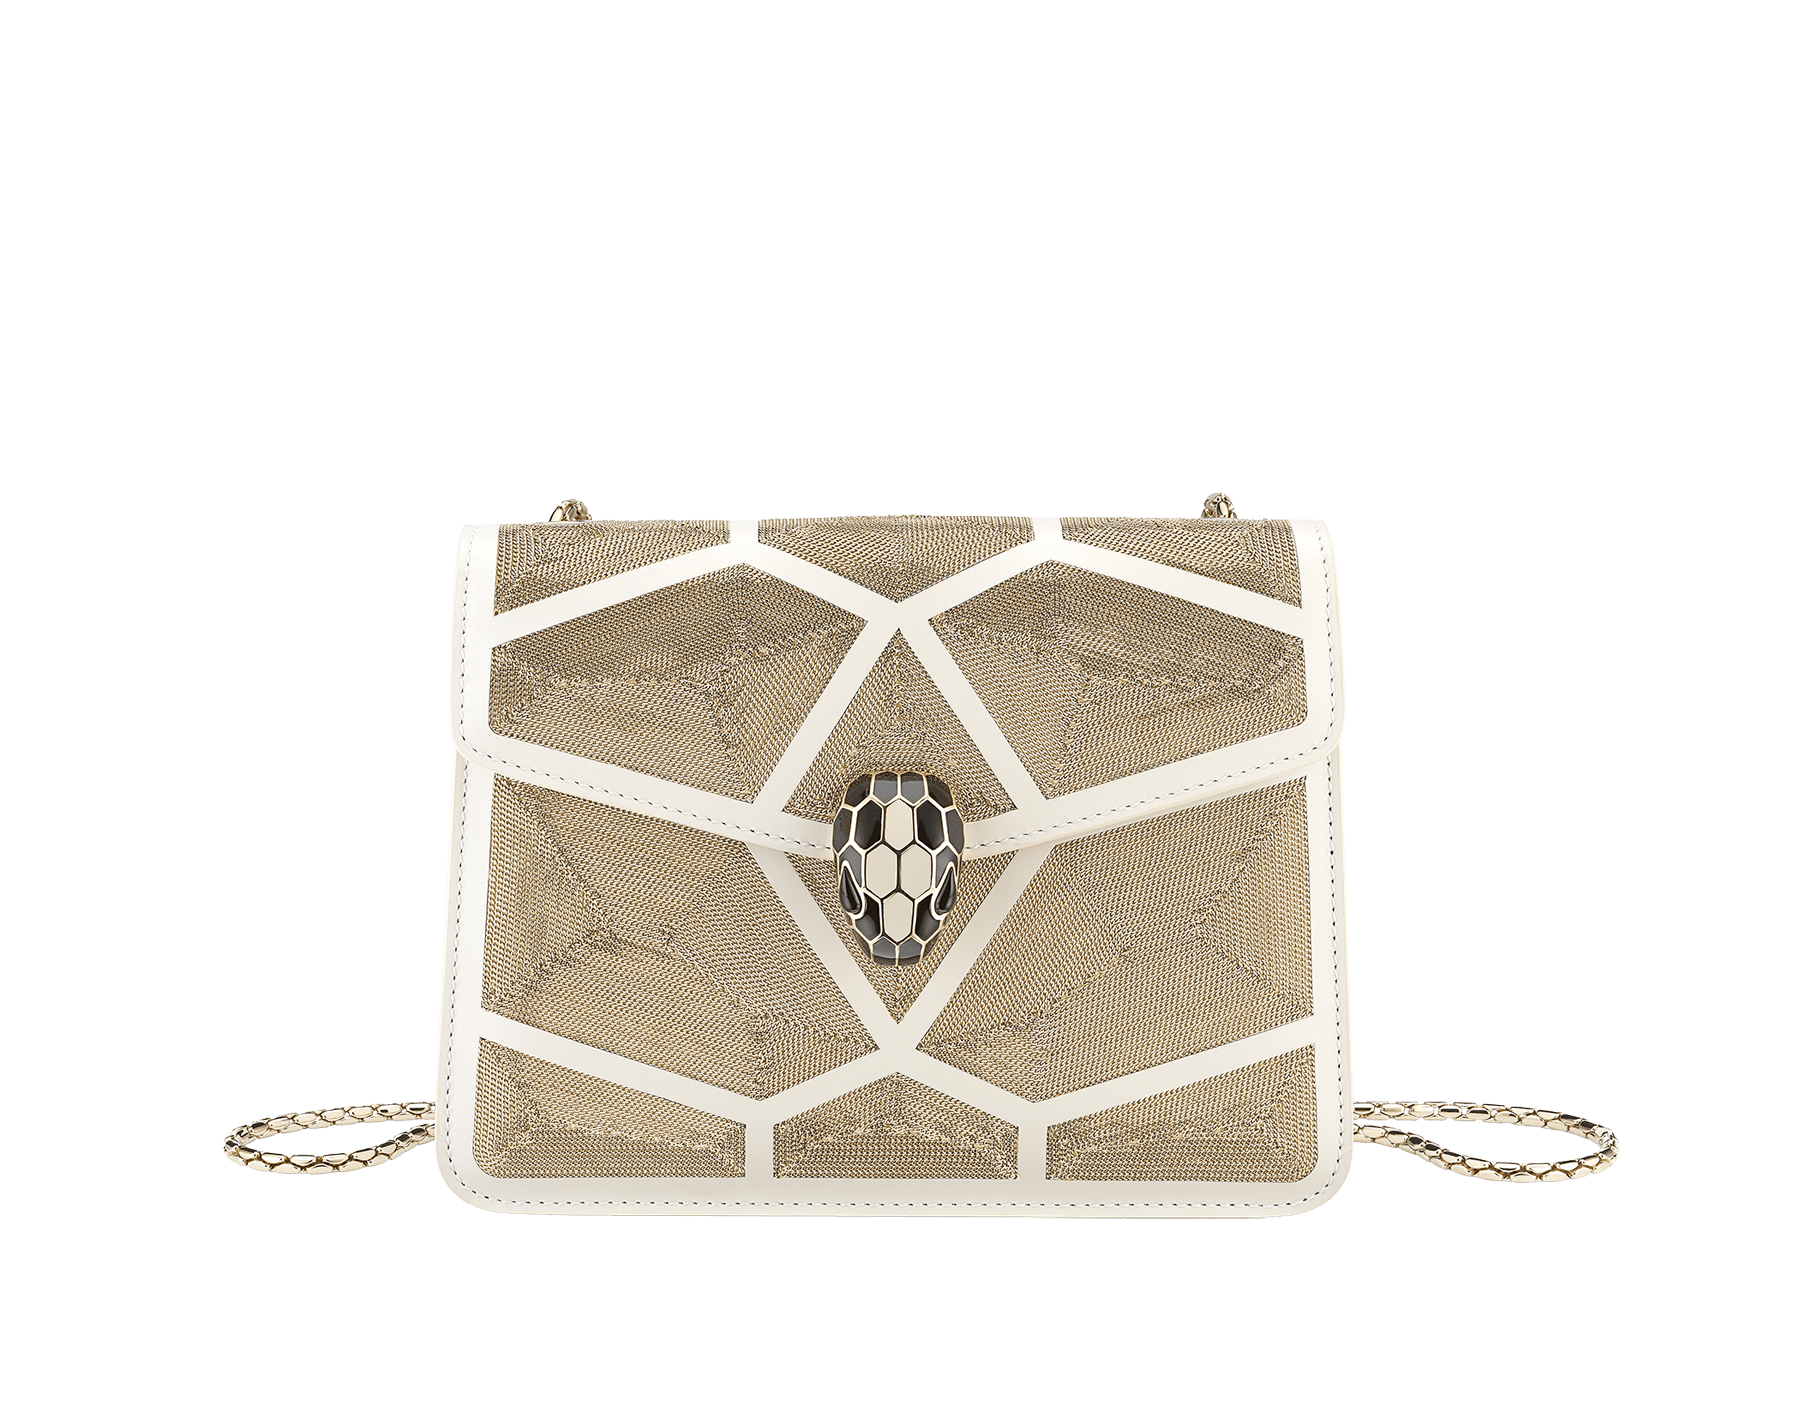 """Serpenti Forever"" crossbody bag in white agate calf leather with ""Million Chain"" décor. Iconic snake head closure in light gold plated brass enriched with black and white agate enamel, and black onyx eyes. 288907 image 1"